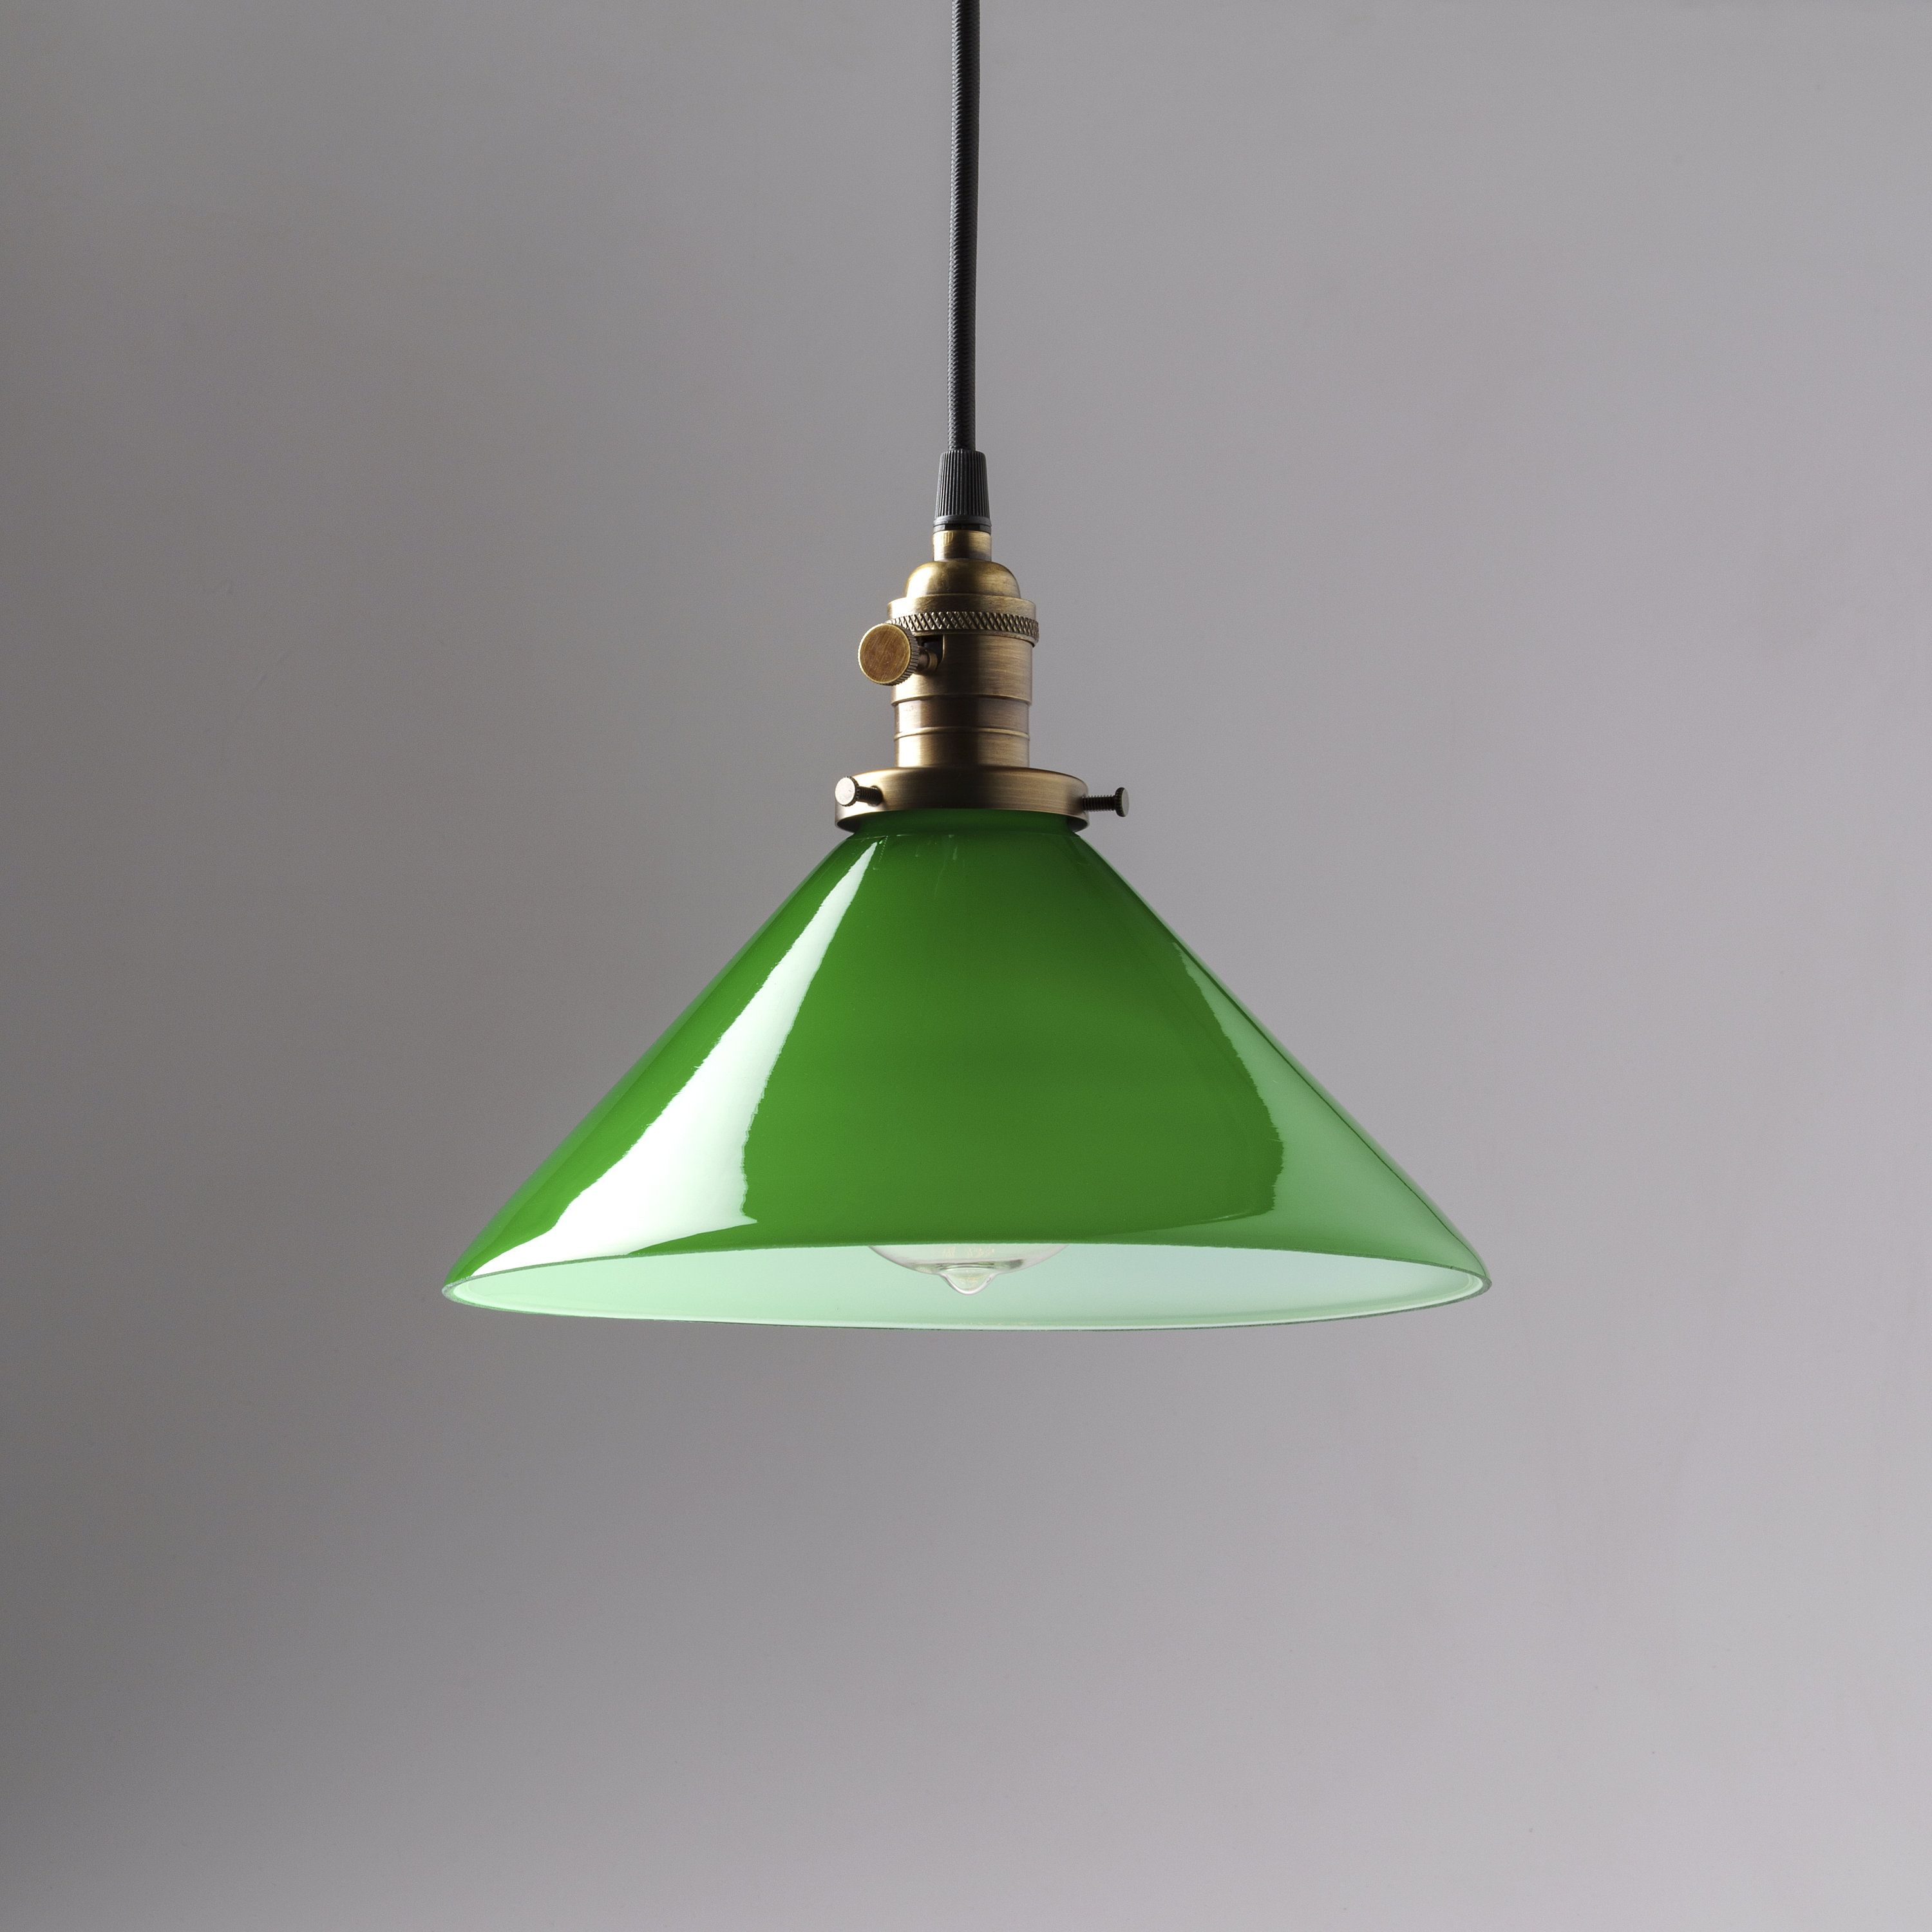 Glass Lamp Ceiling Pendant Light Fixture Green Glass Cone Shade 10